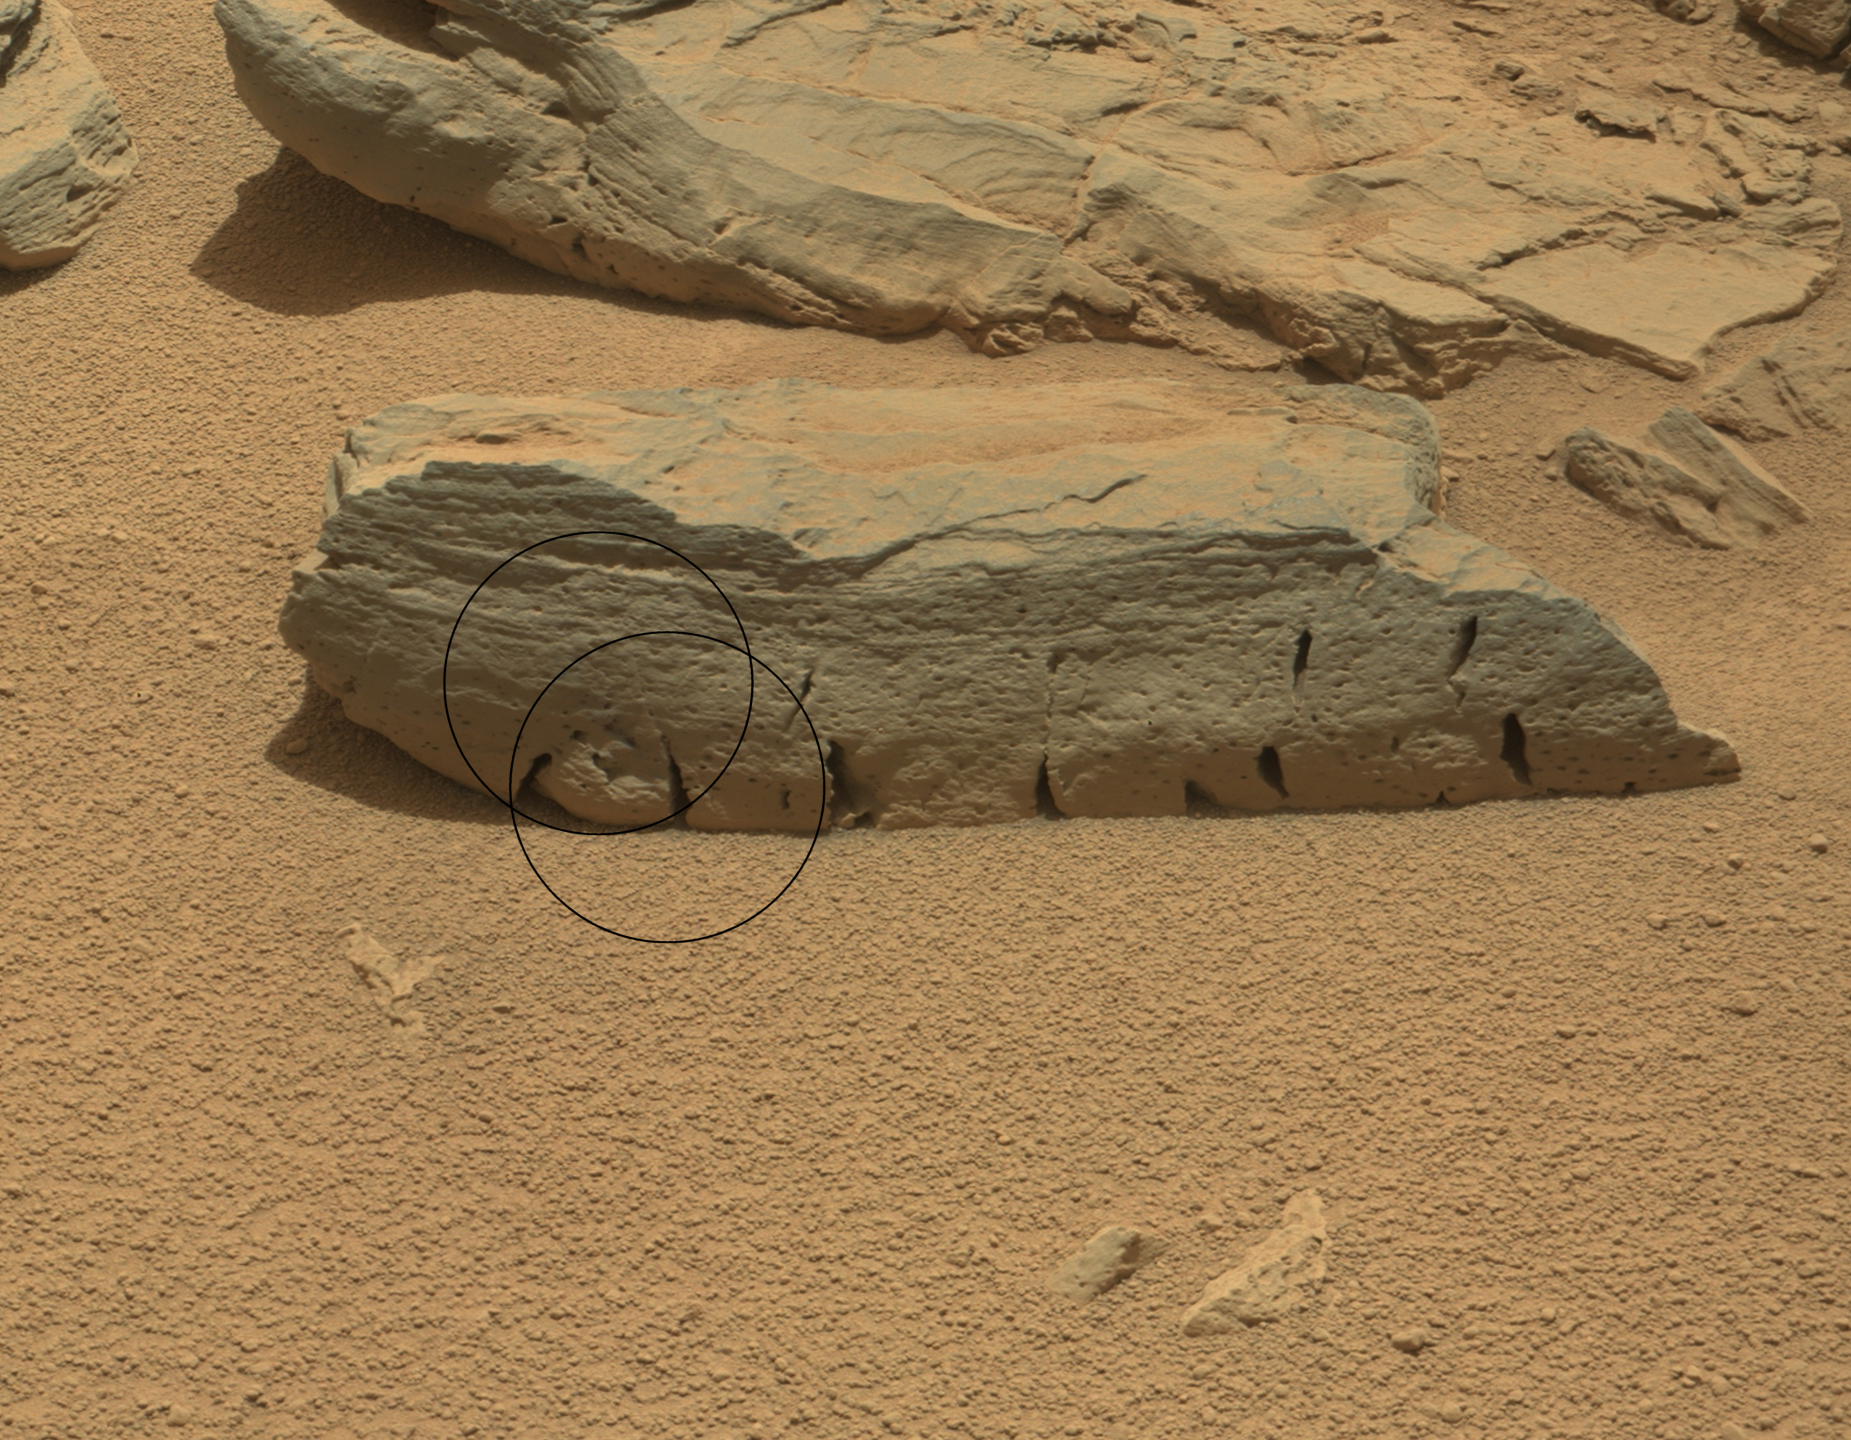 Fostering Curiosity: Mars Express relays first science ...